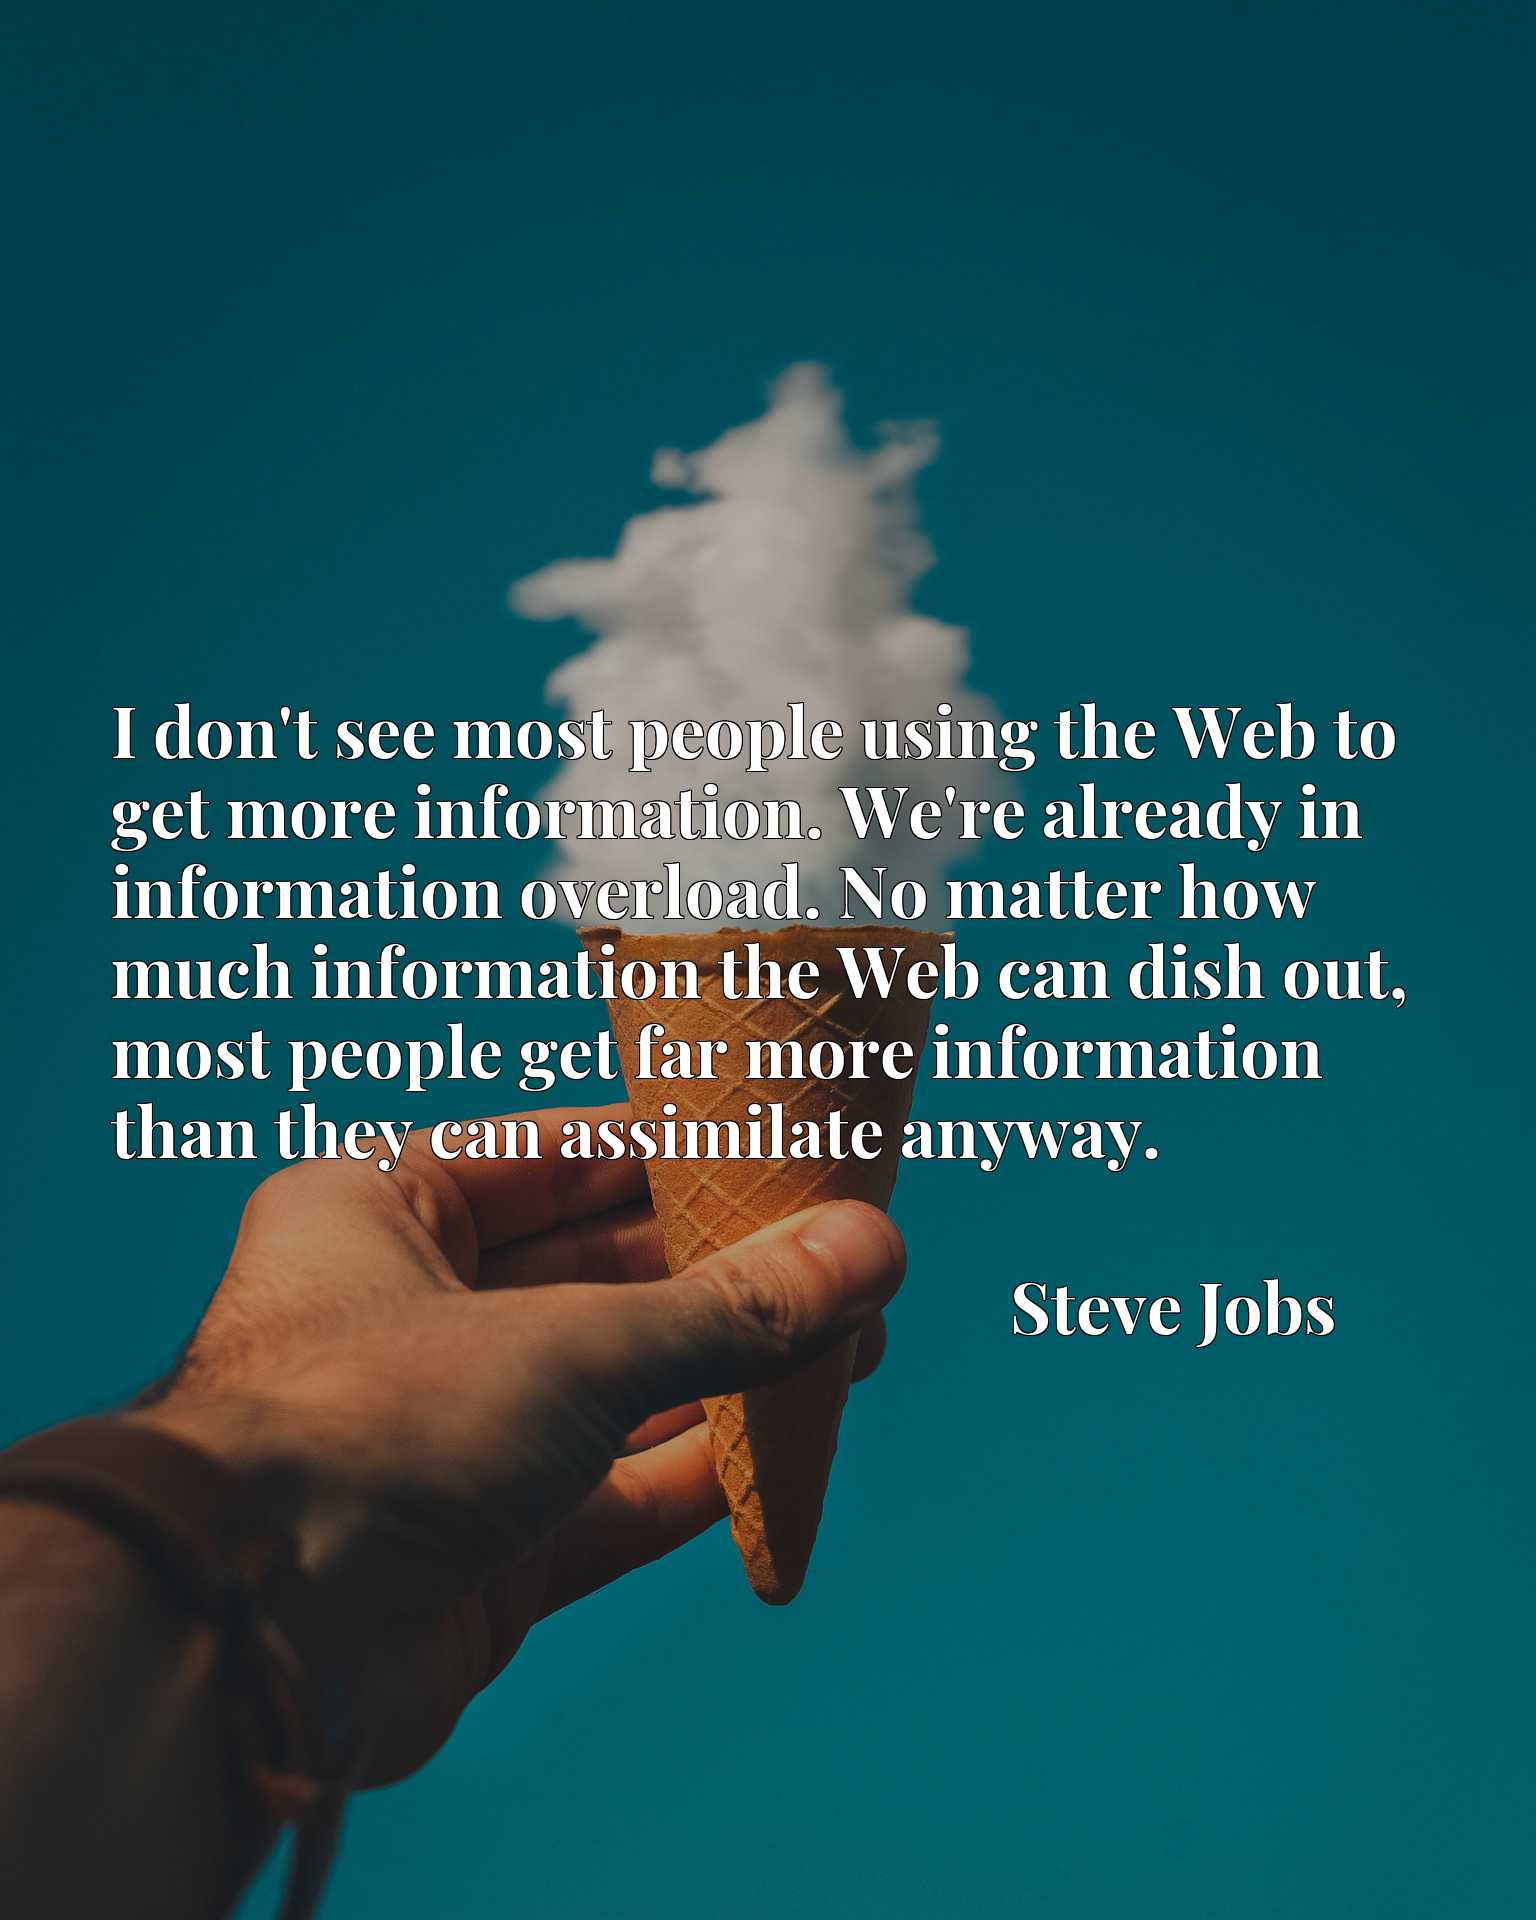 I don't see most people using the Web to get more information. We're already in information overload. No matter how much information the Web can dish out, most people get far more information than they can assimilate anyway.